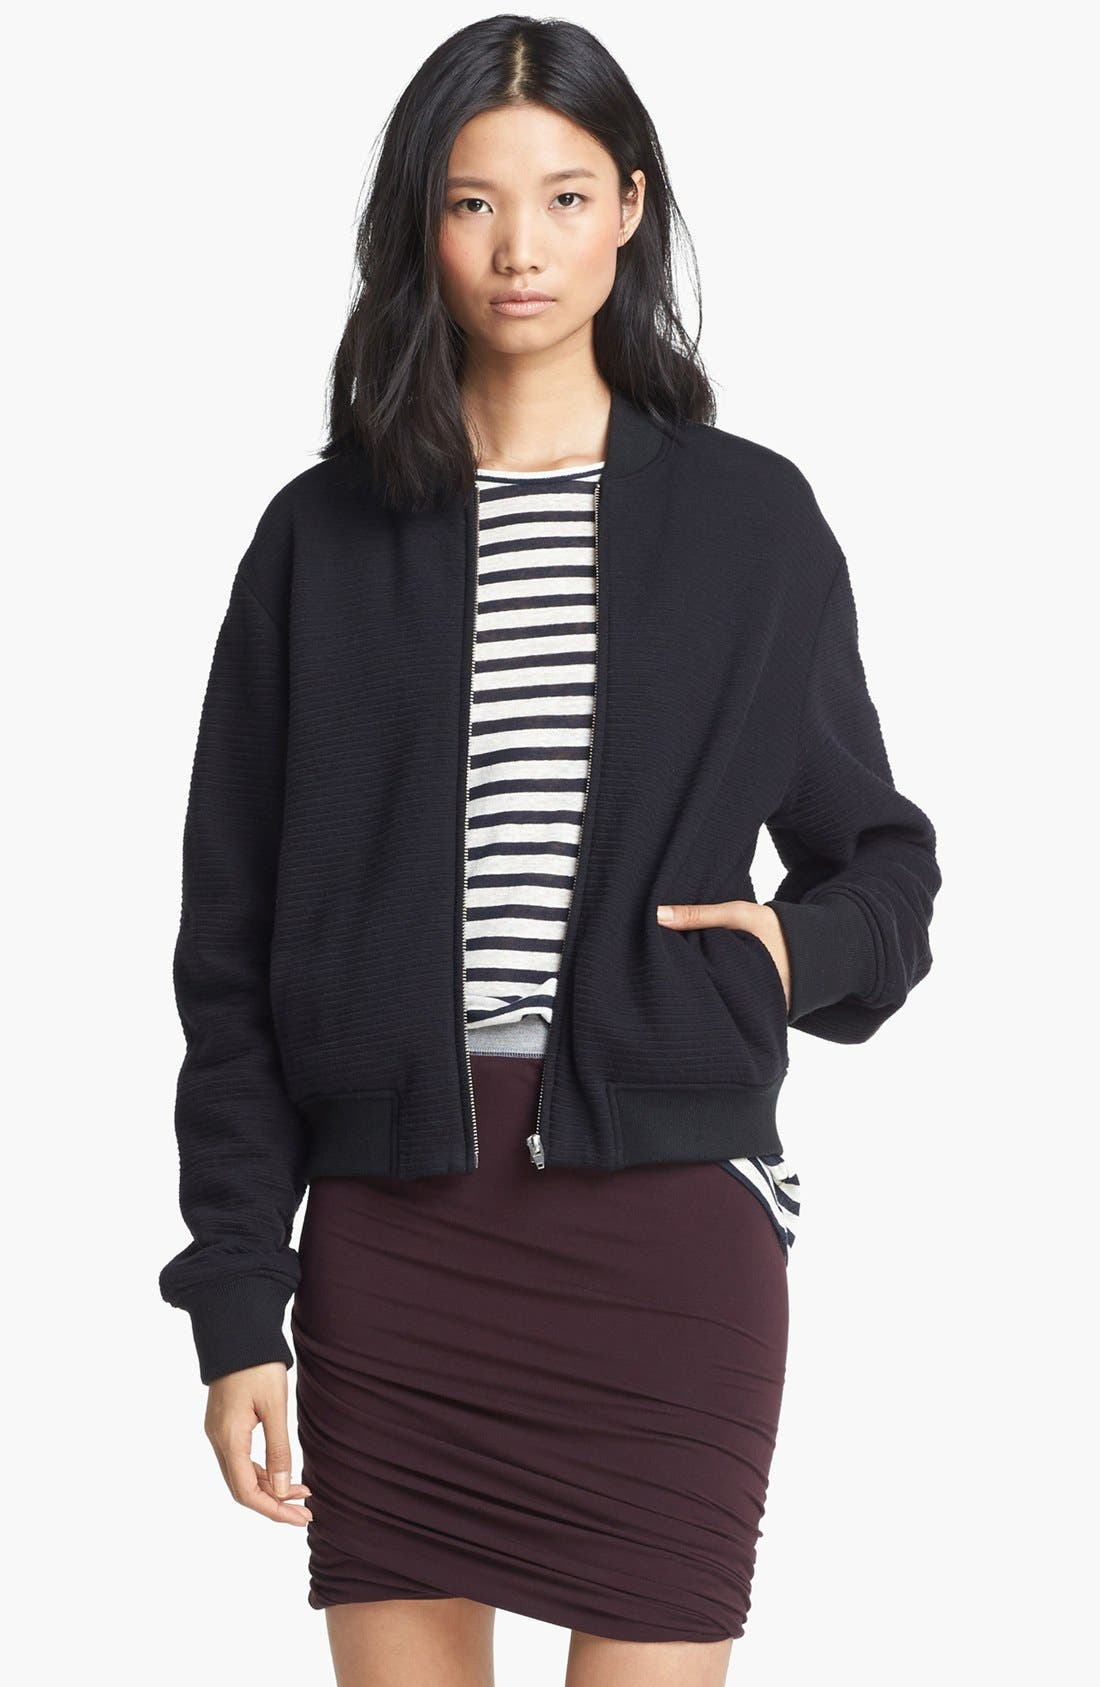 Alternate Image 1 Selected - T by Alexander Wang Ottoman Stitch Bomber Jacket